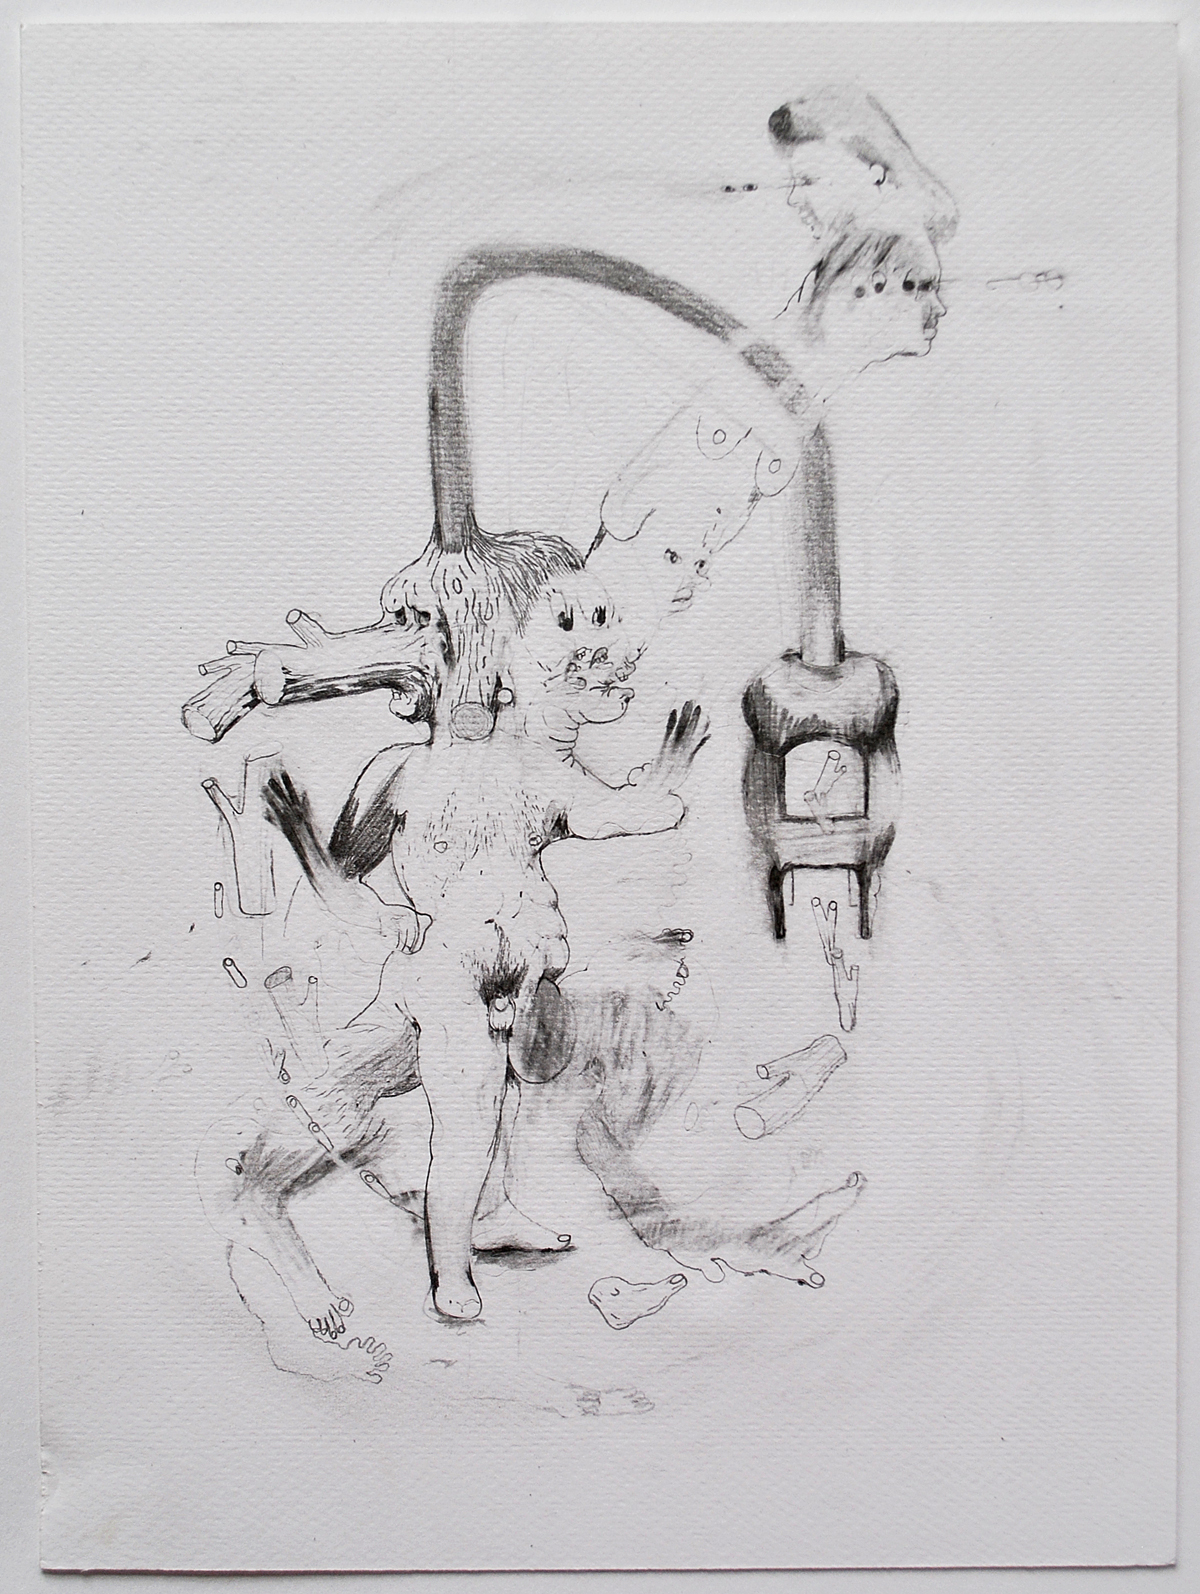 'Whirling Logs' Kate Lyddon Pencil on paper, 24cm x 17.8 cm, 2015